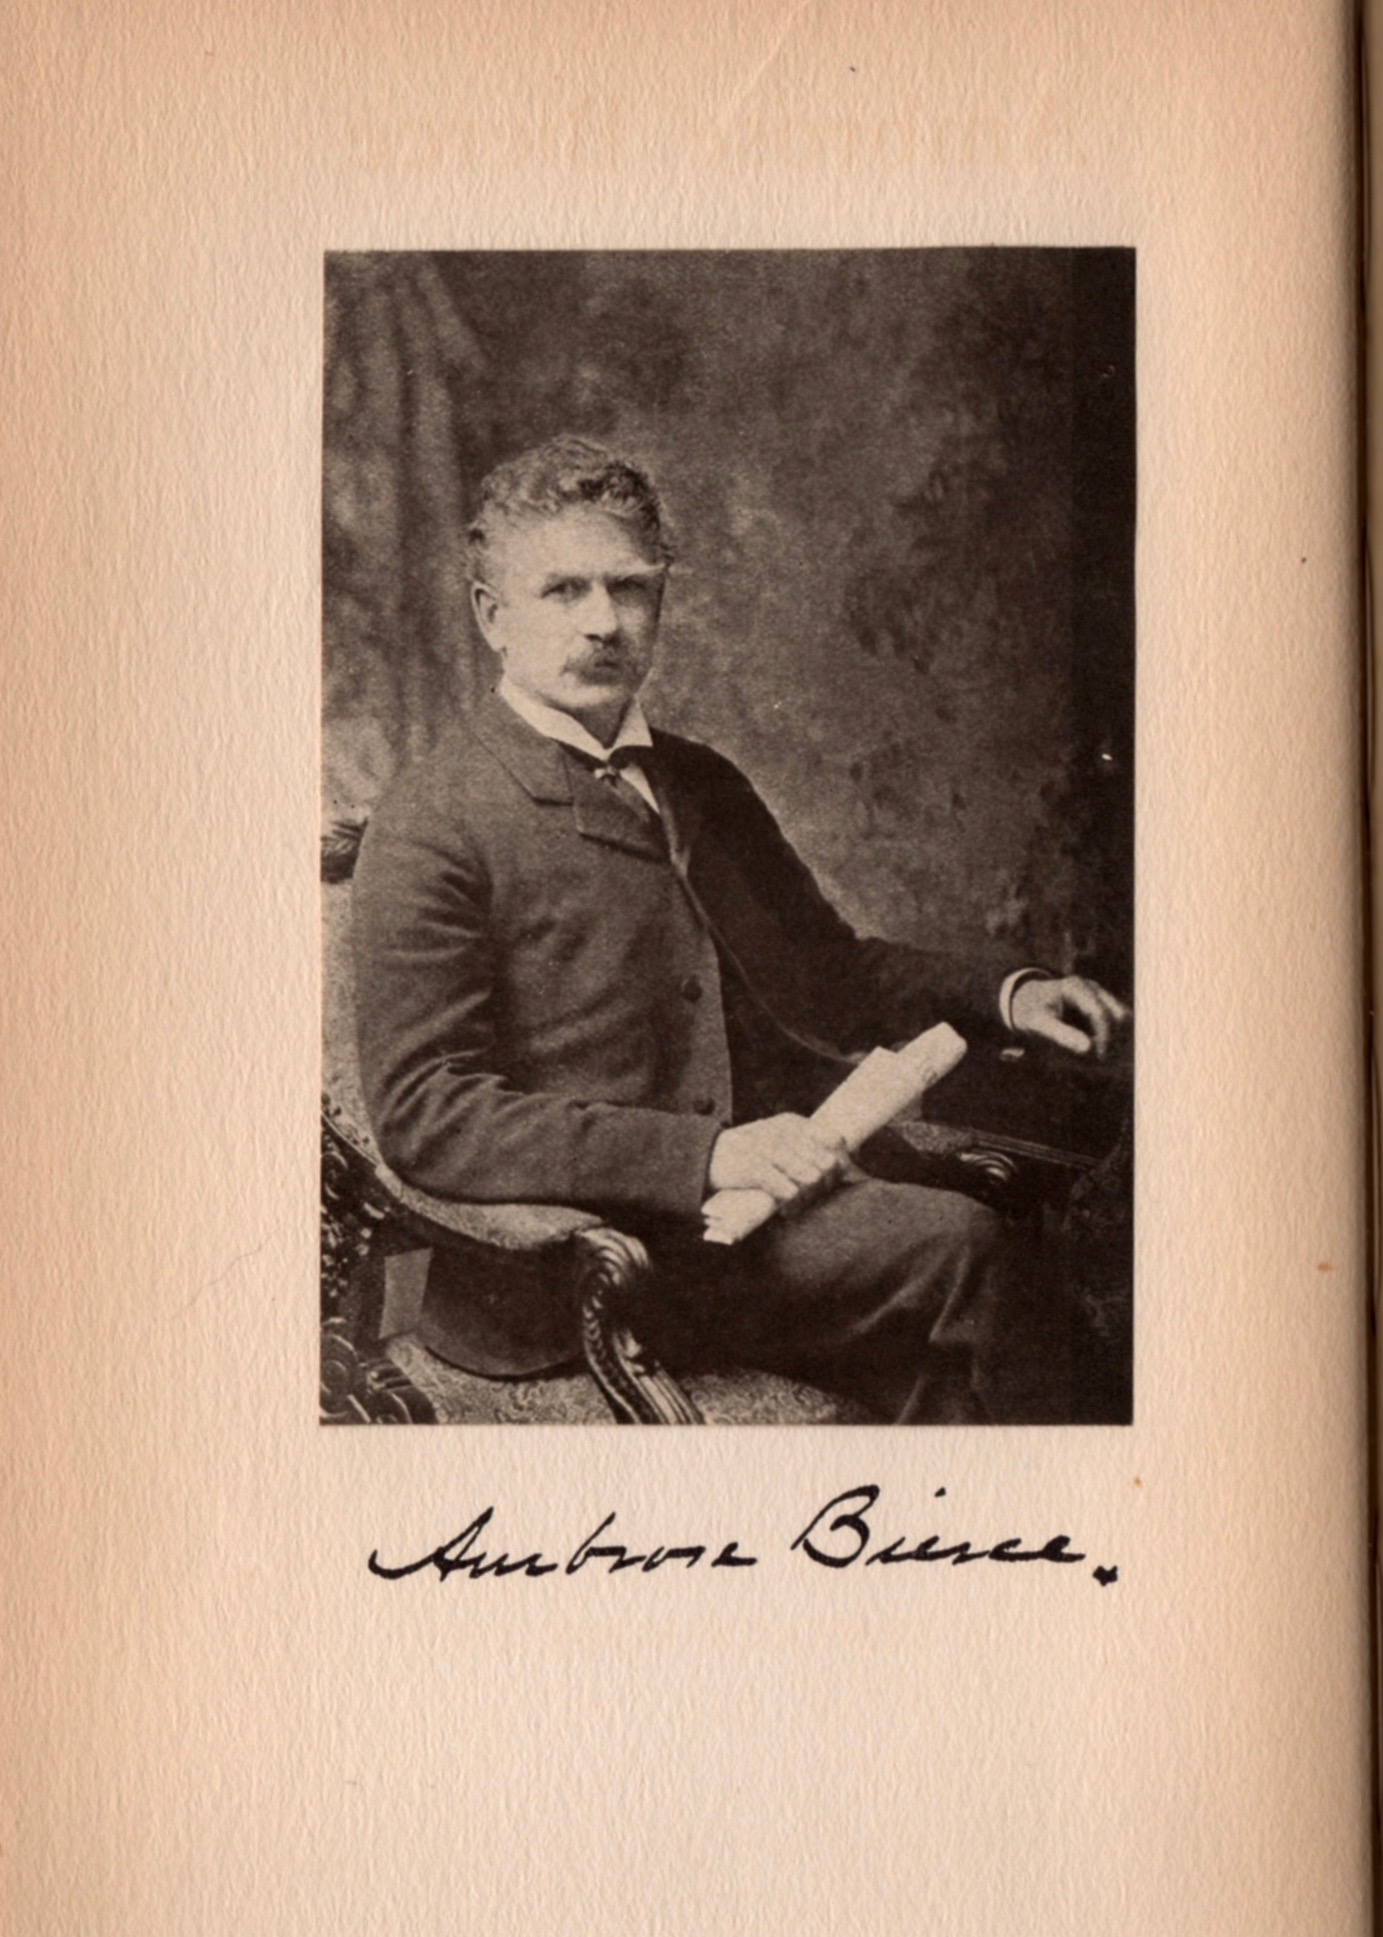 And a photo of Bierce himself. There's more about Bierce and Starrett  here .